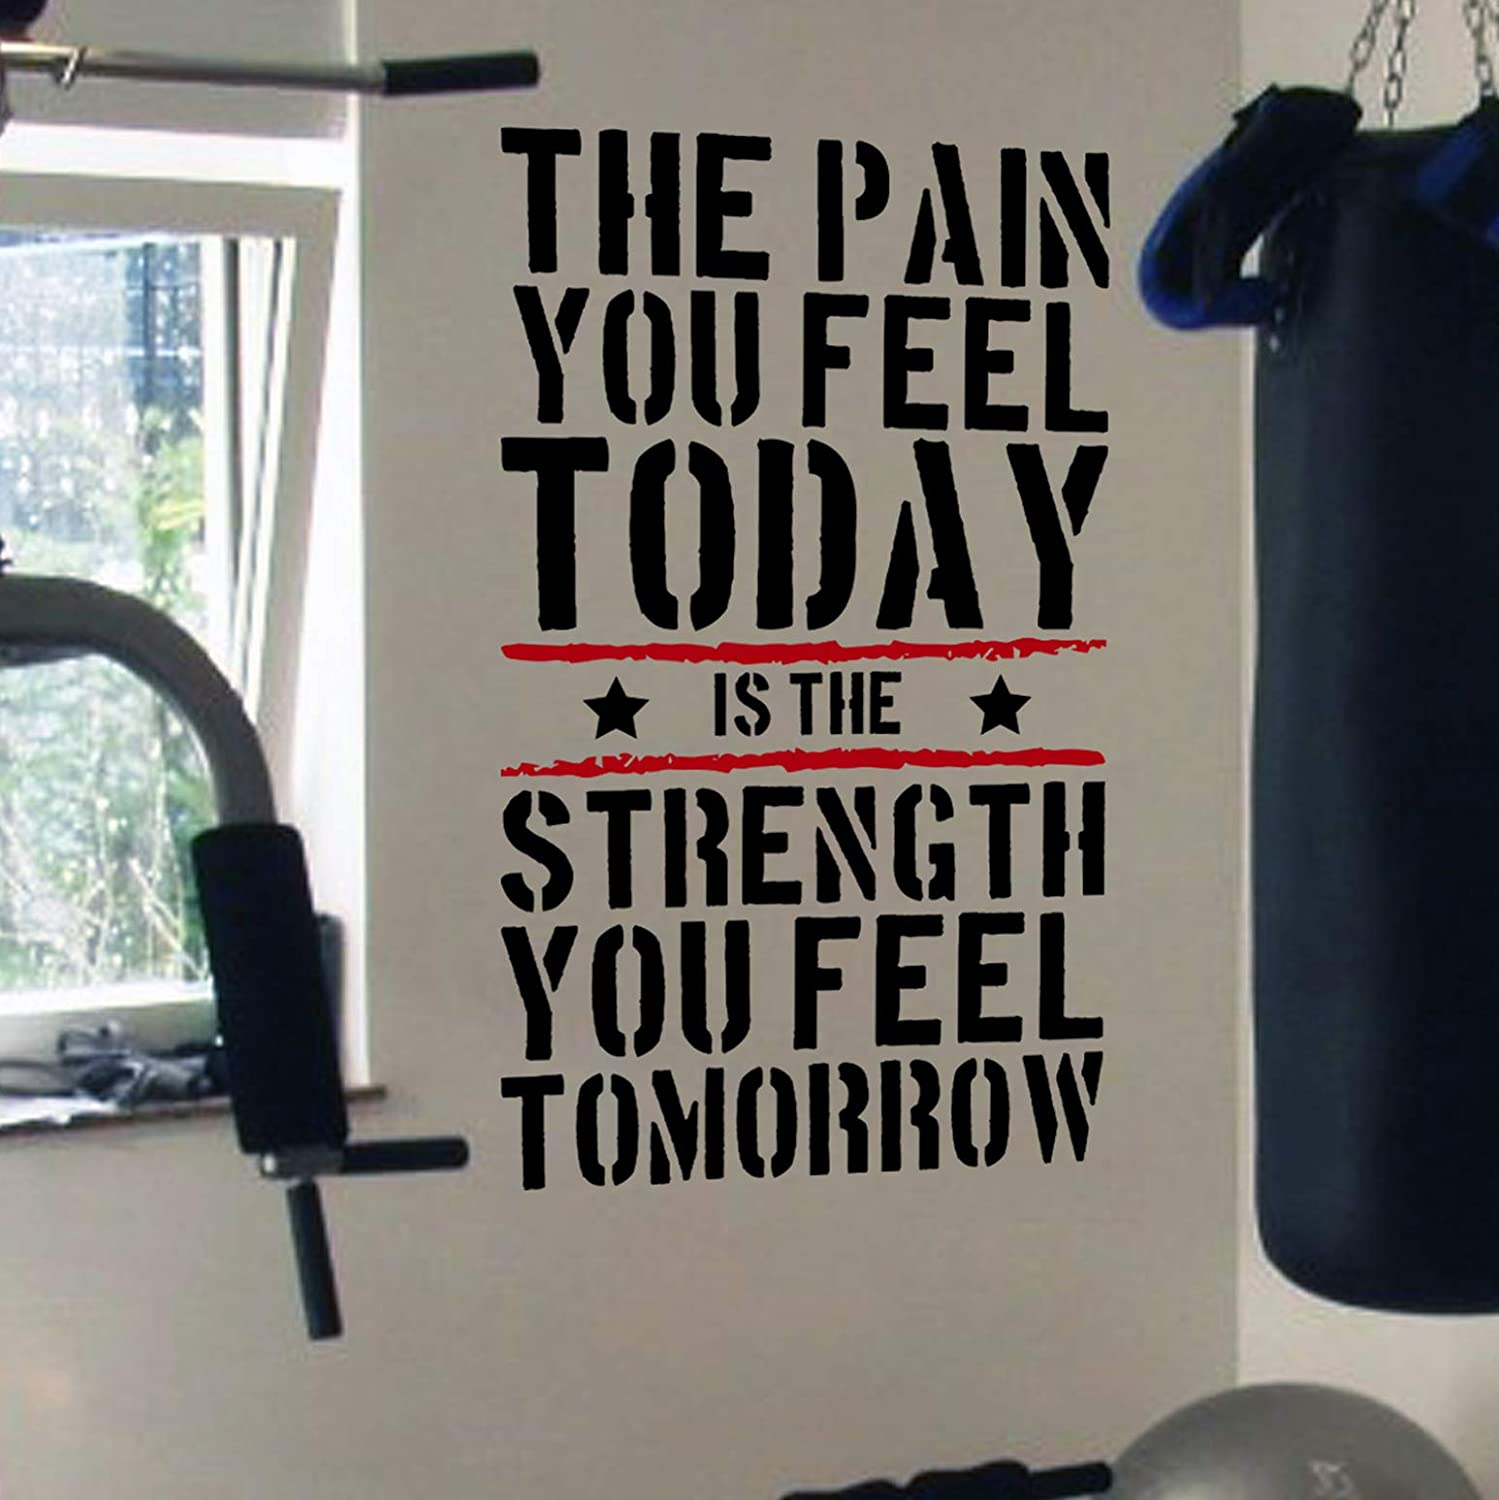 DesignDivil, adesivo murale con frase motivazionale su salute/allenamento in inglese 'The Pain You Feel Today is the Strength You Feel Tomorrow', per TRX, spinning, kettlebell, allenamento, boxe e arti marziali Designdivil Wall Decals